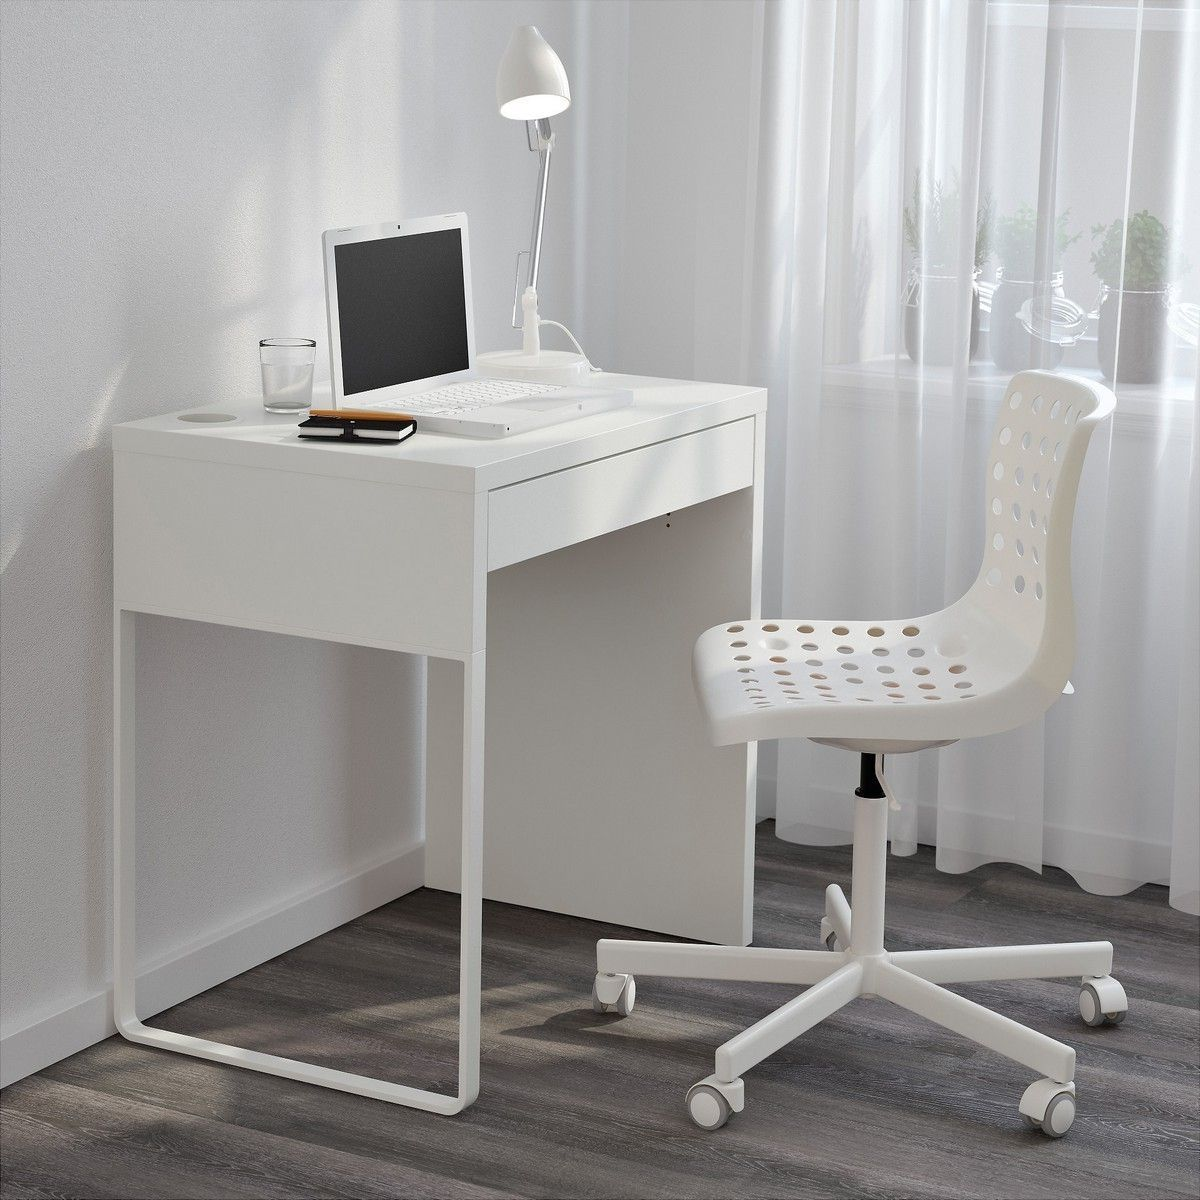 14 Great Amazing Home Office Chair Ideas To Make A Room Beautiful Ikea White Desk Desks For Small Spaces White Desk Bedroom